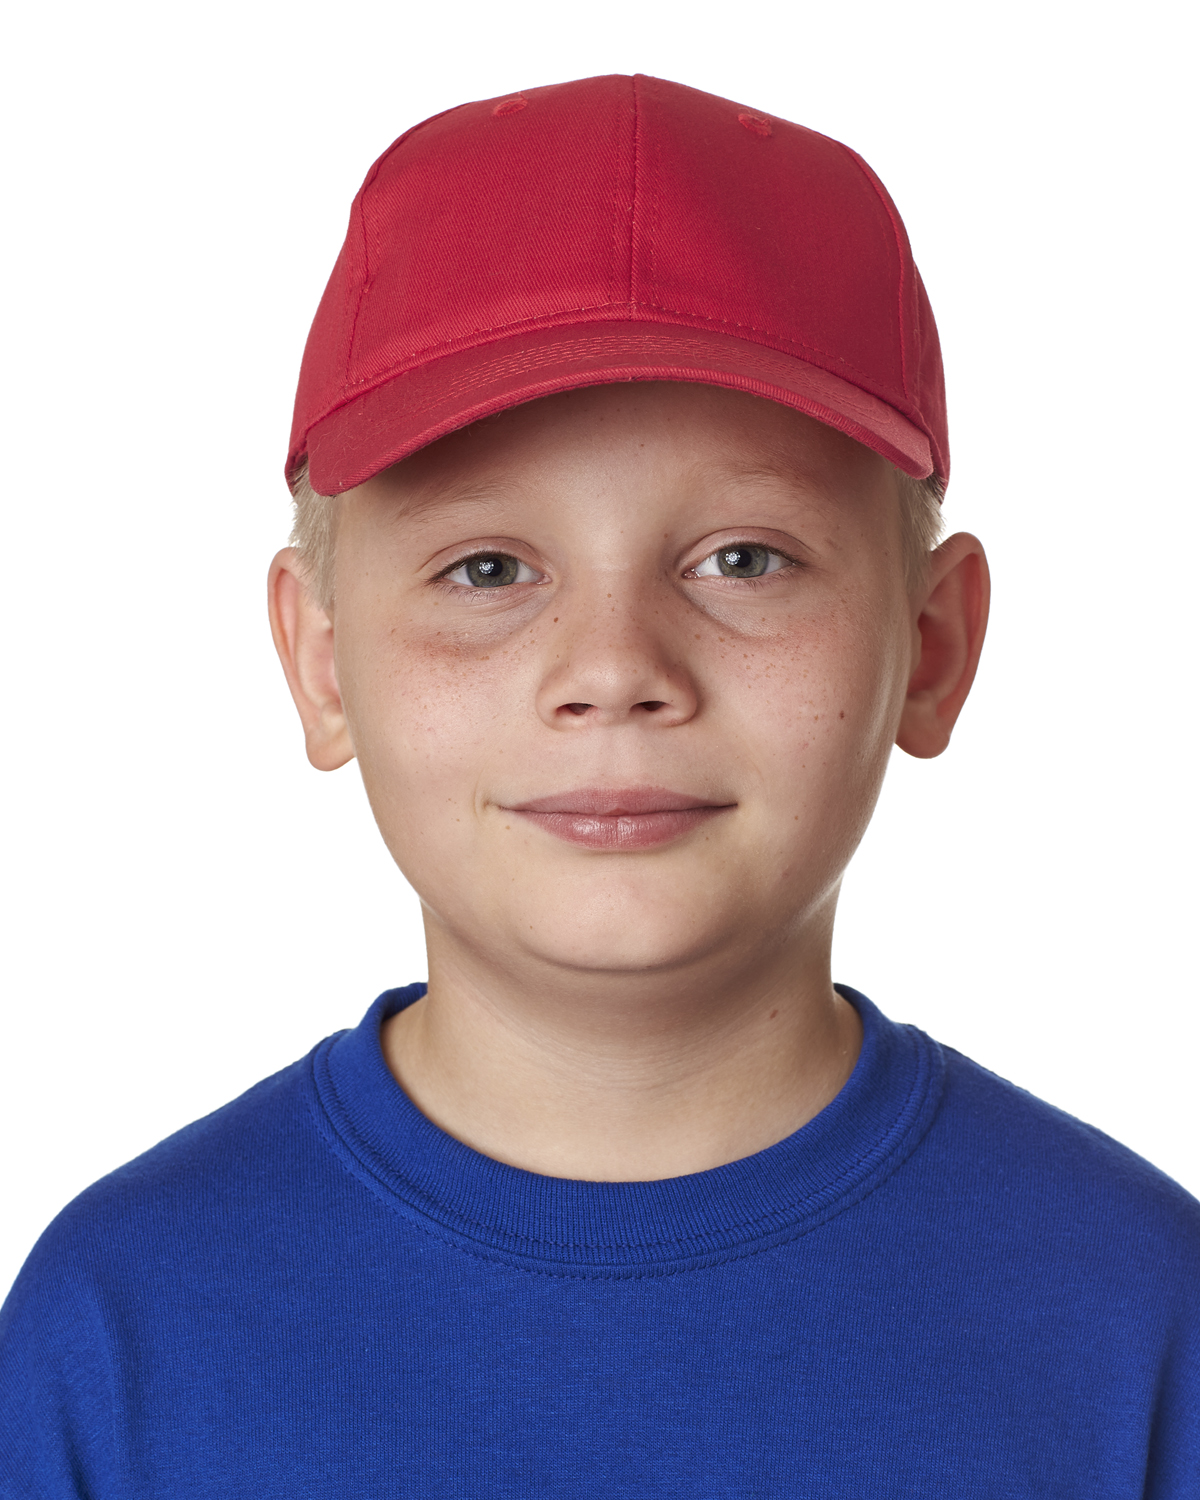 8122 UltraClub Youth Classic Cut Cotton Twill Cap